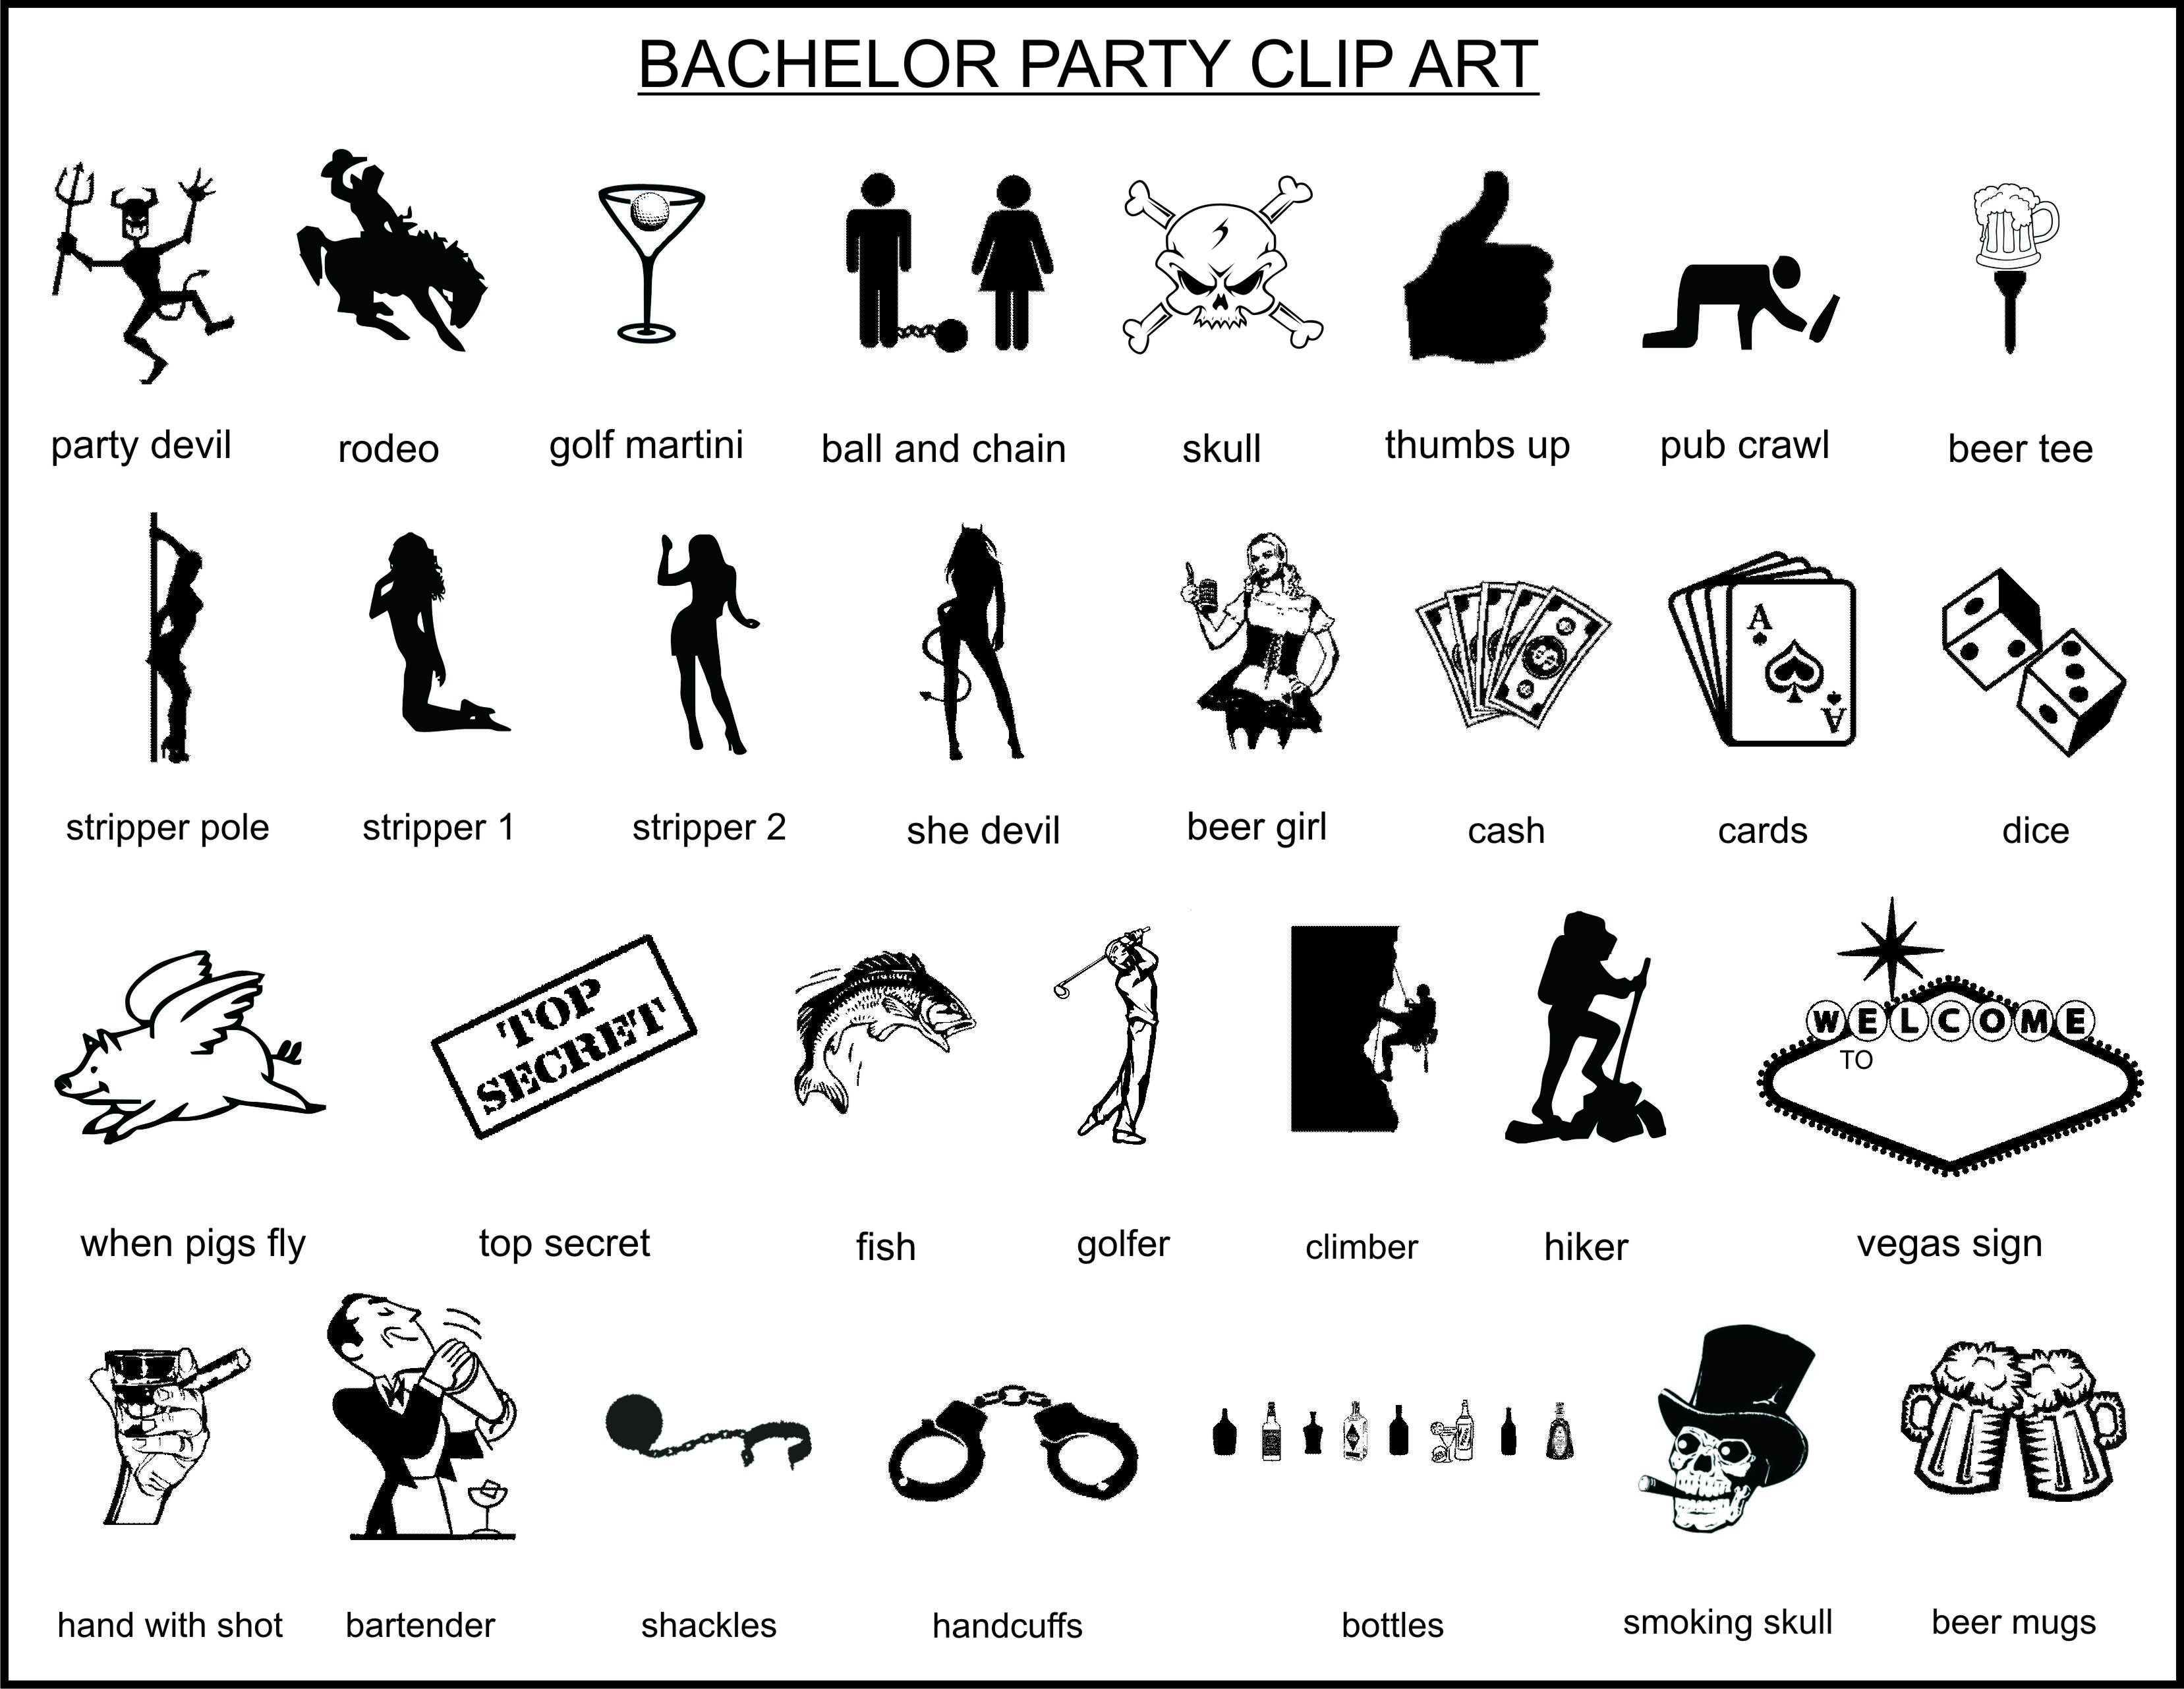 Bachelor party clipart.